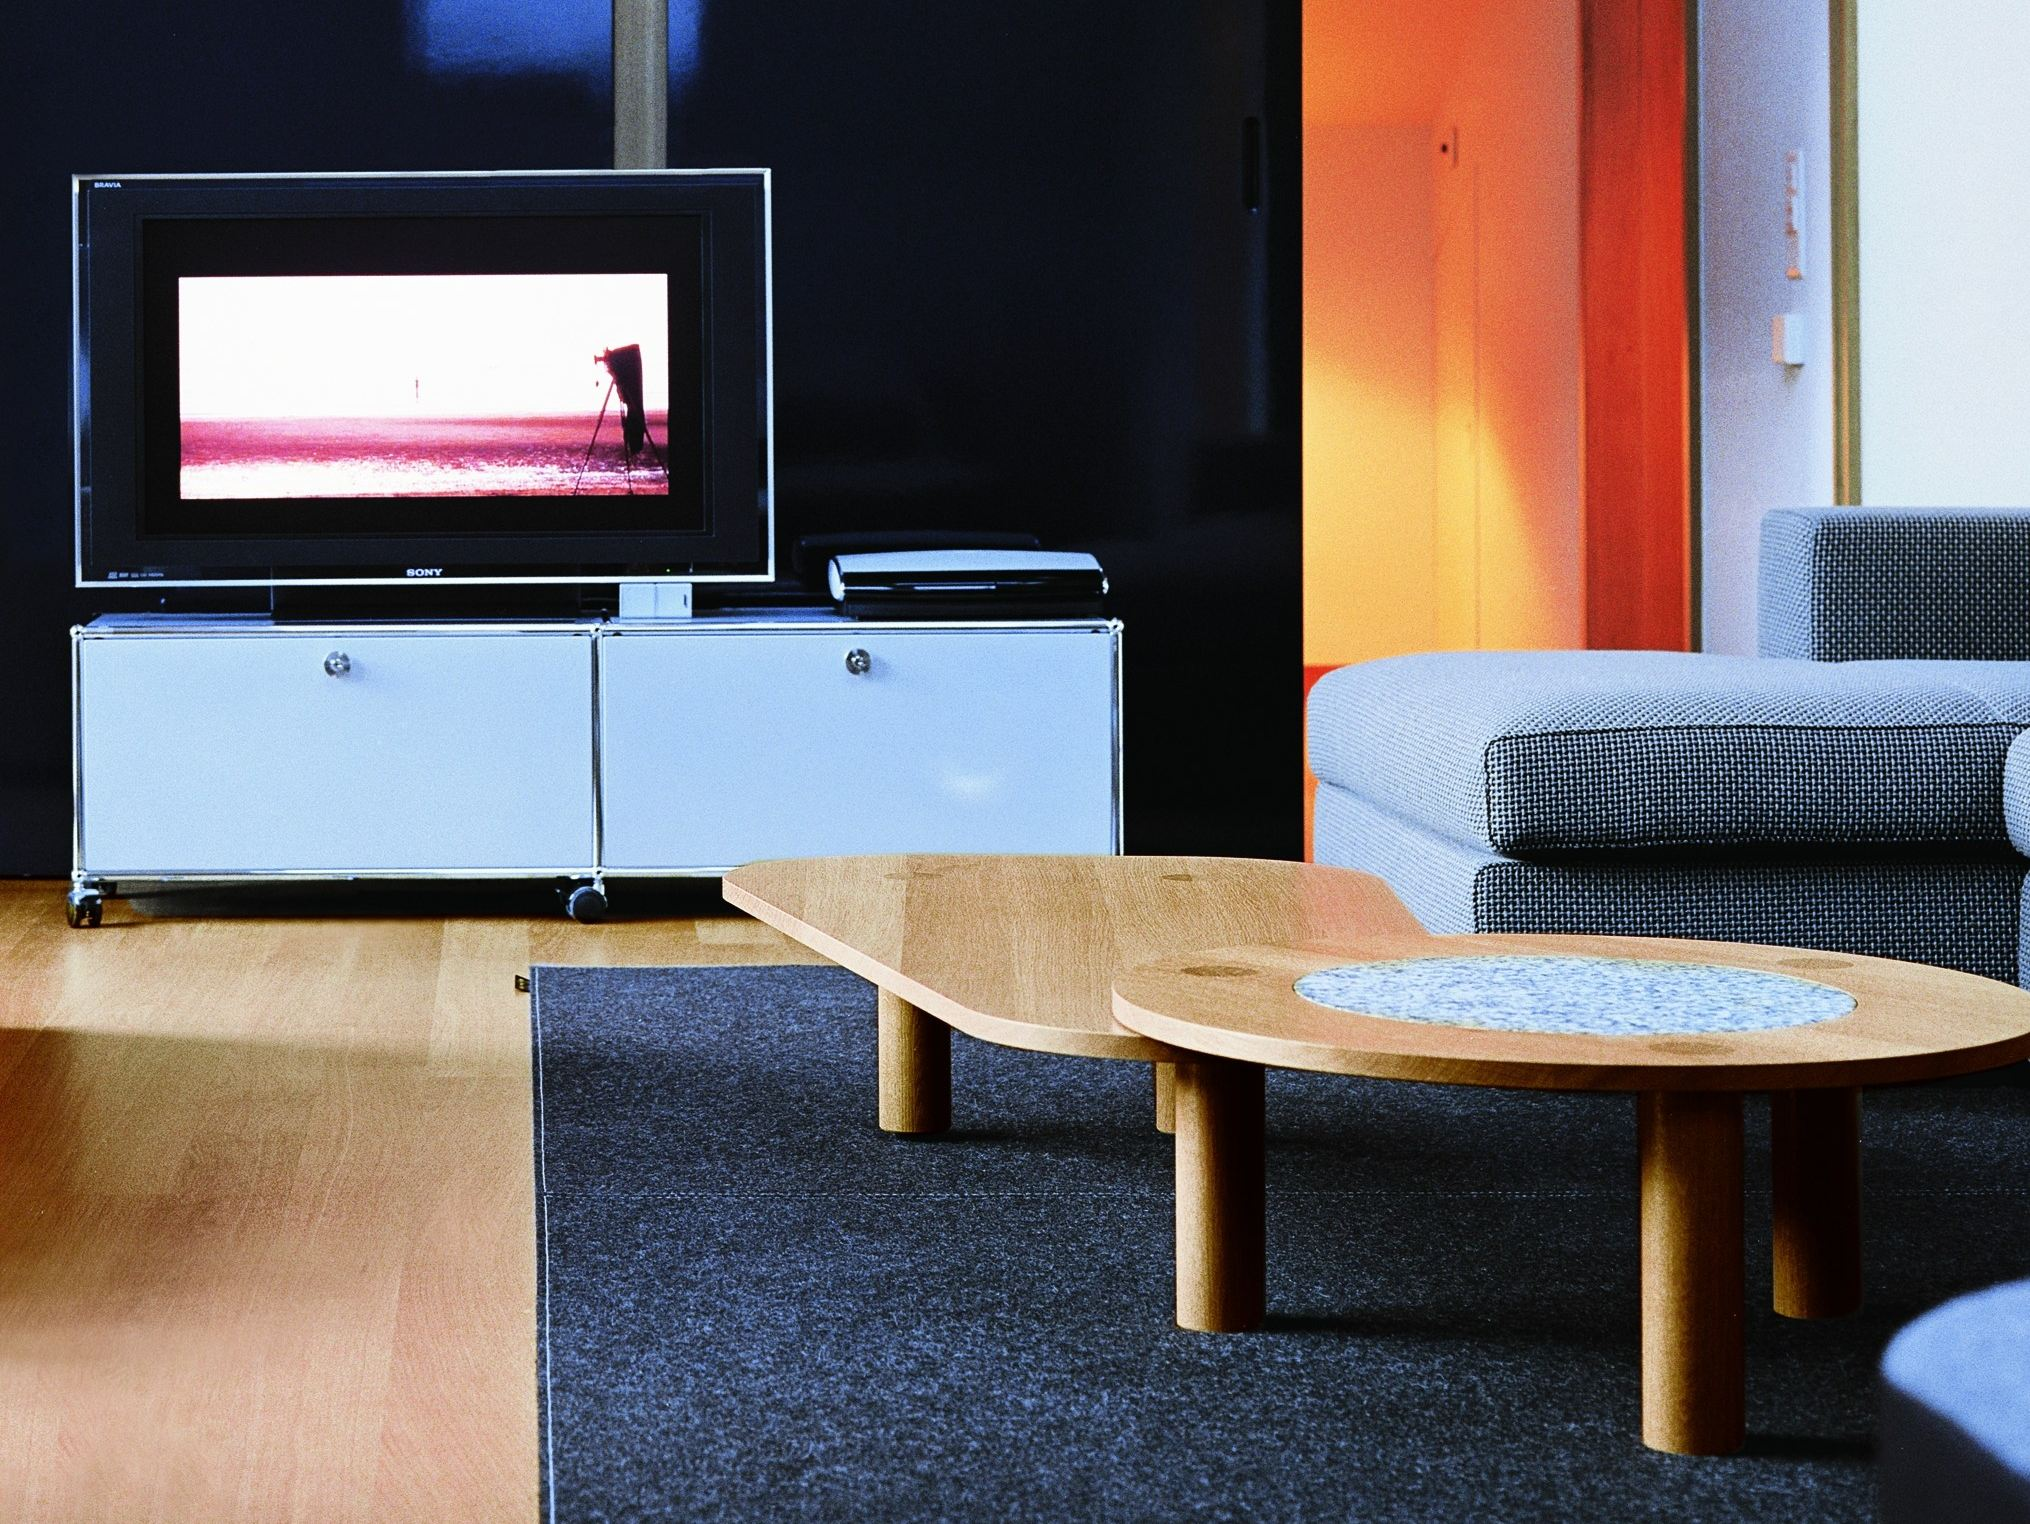 usm haller entertainment unit tv m bel aus metall by usm modular furniture design fritz haller. Black Bedroom Furniture Sets. Home Design Ideas